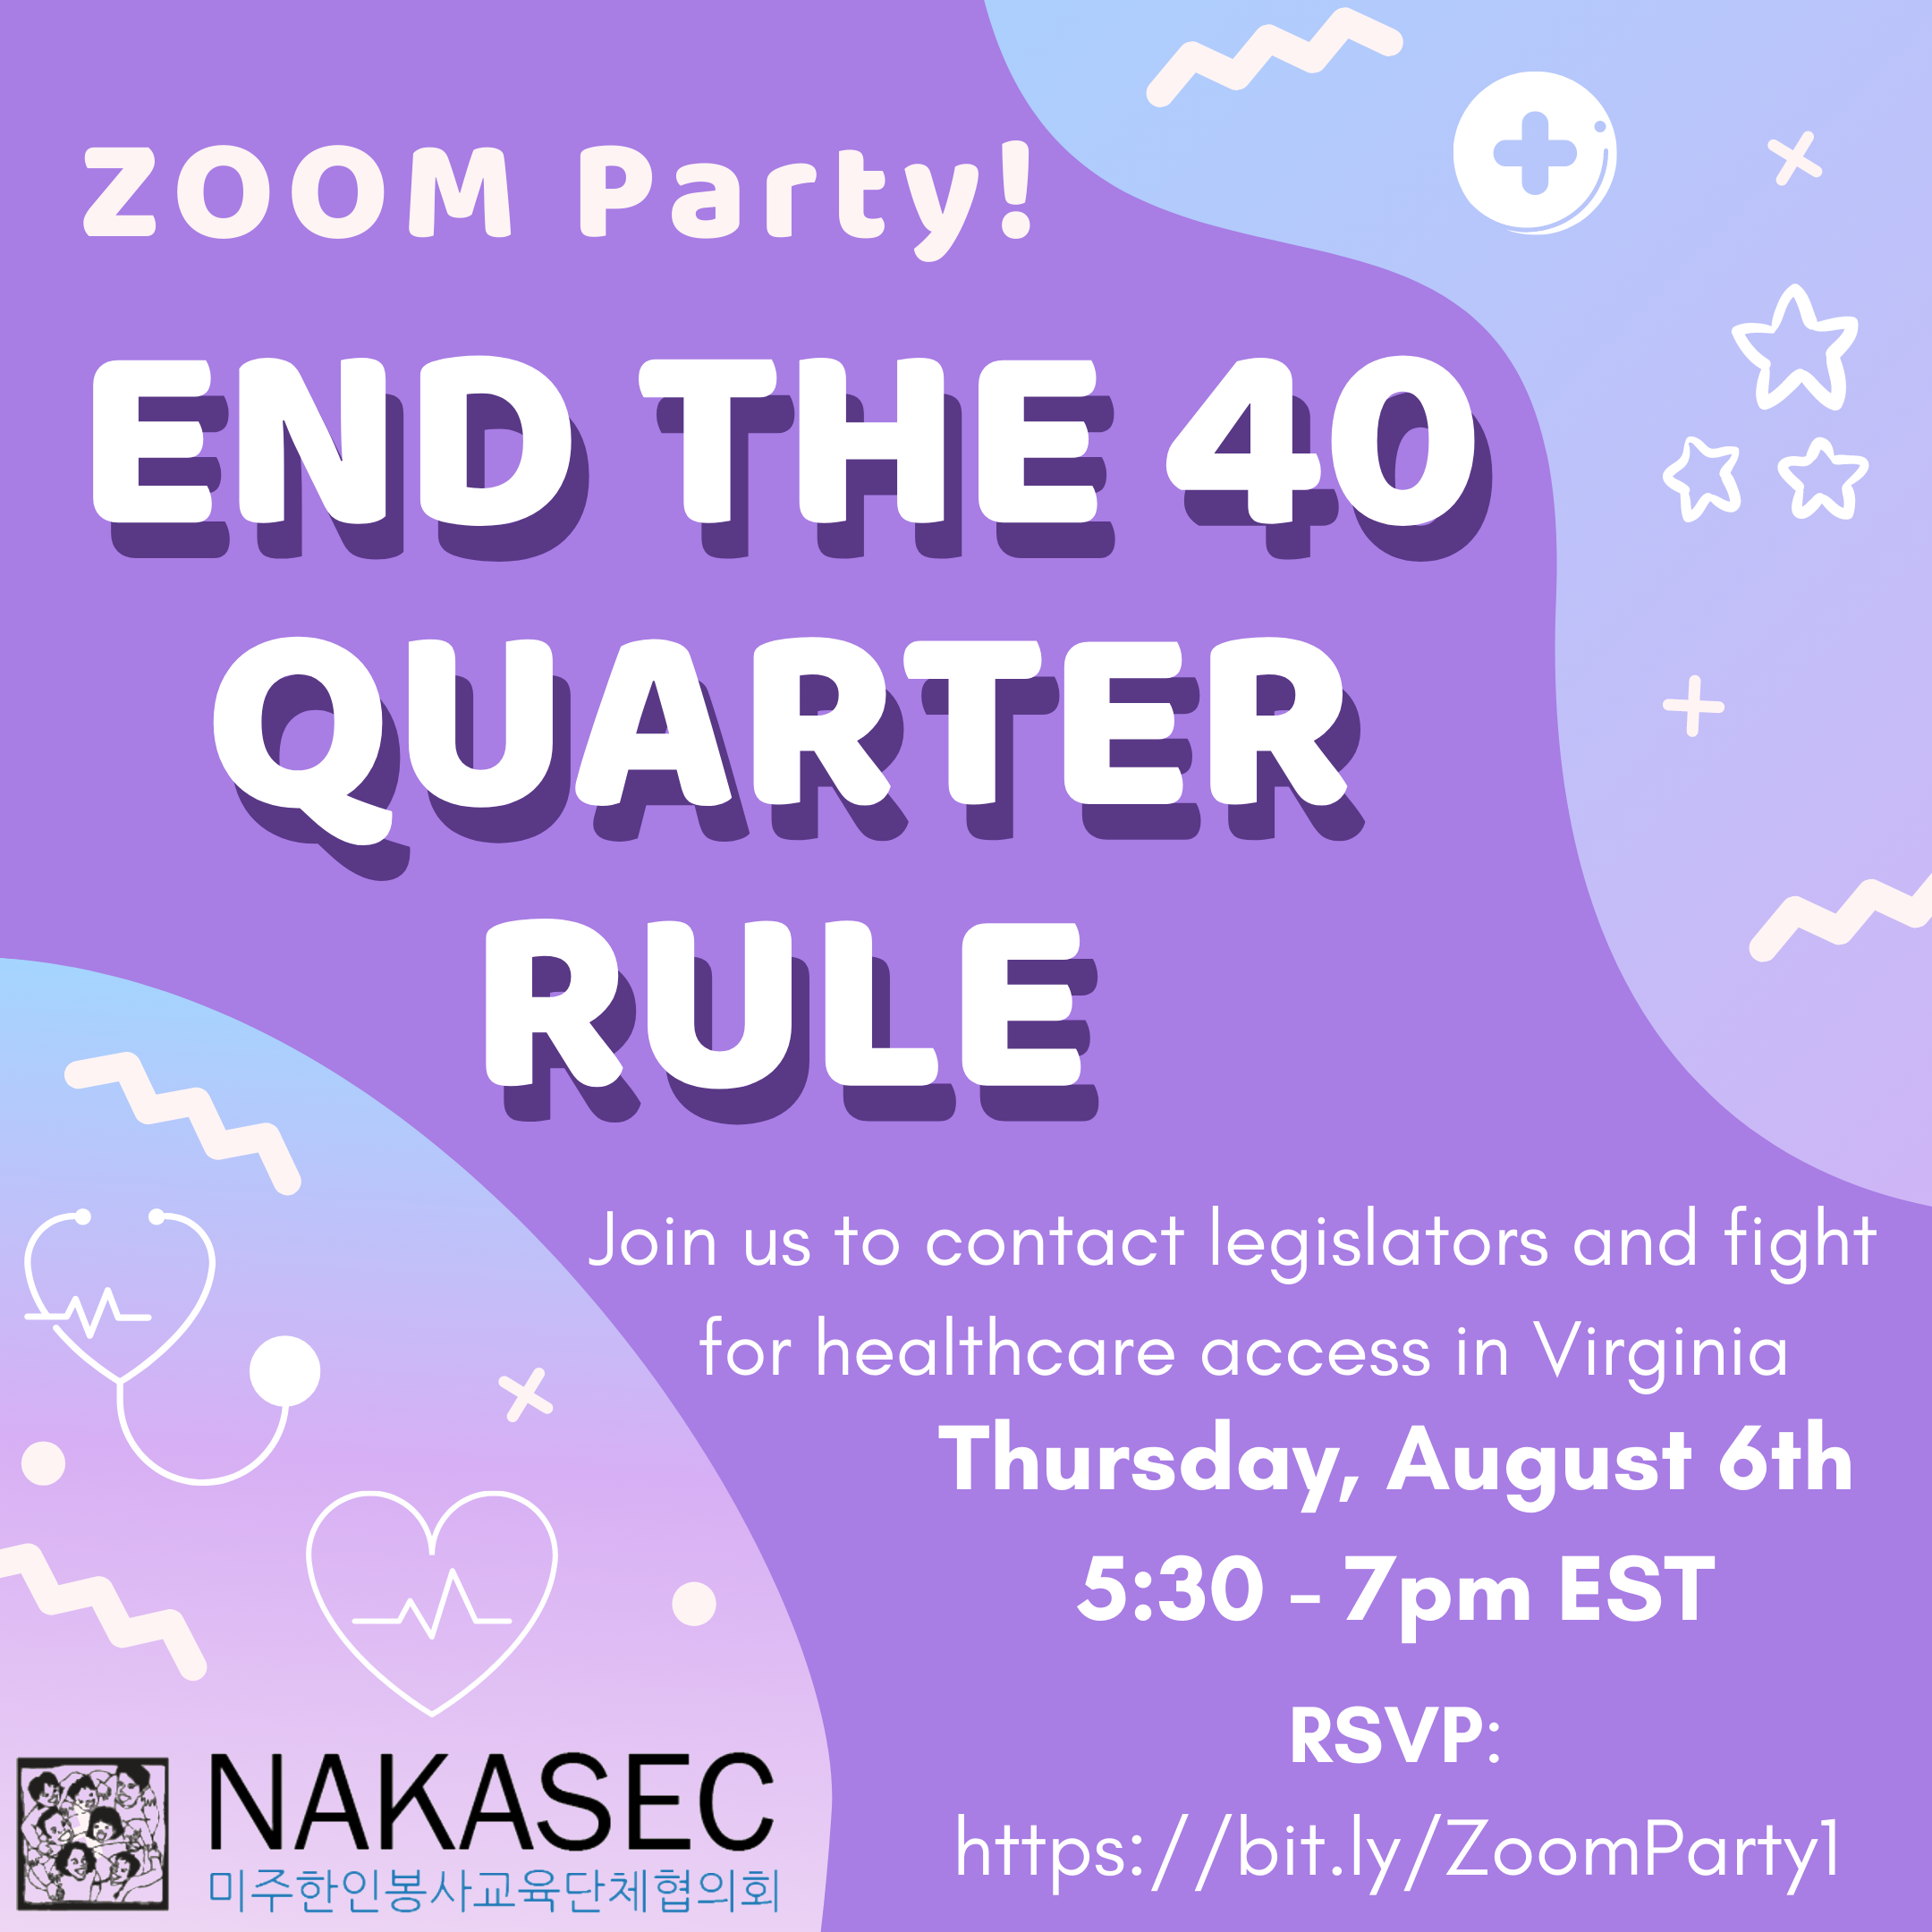 NAKASEC VA Zoom Party! End the 40 Quarter Rule. Join us to contact legislators and fight for healthcare access in Virginia. Thursday, August 6th; 5:30-7pm EST. RSVP: https://bit.ly/ZoomParty1